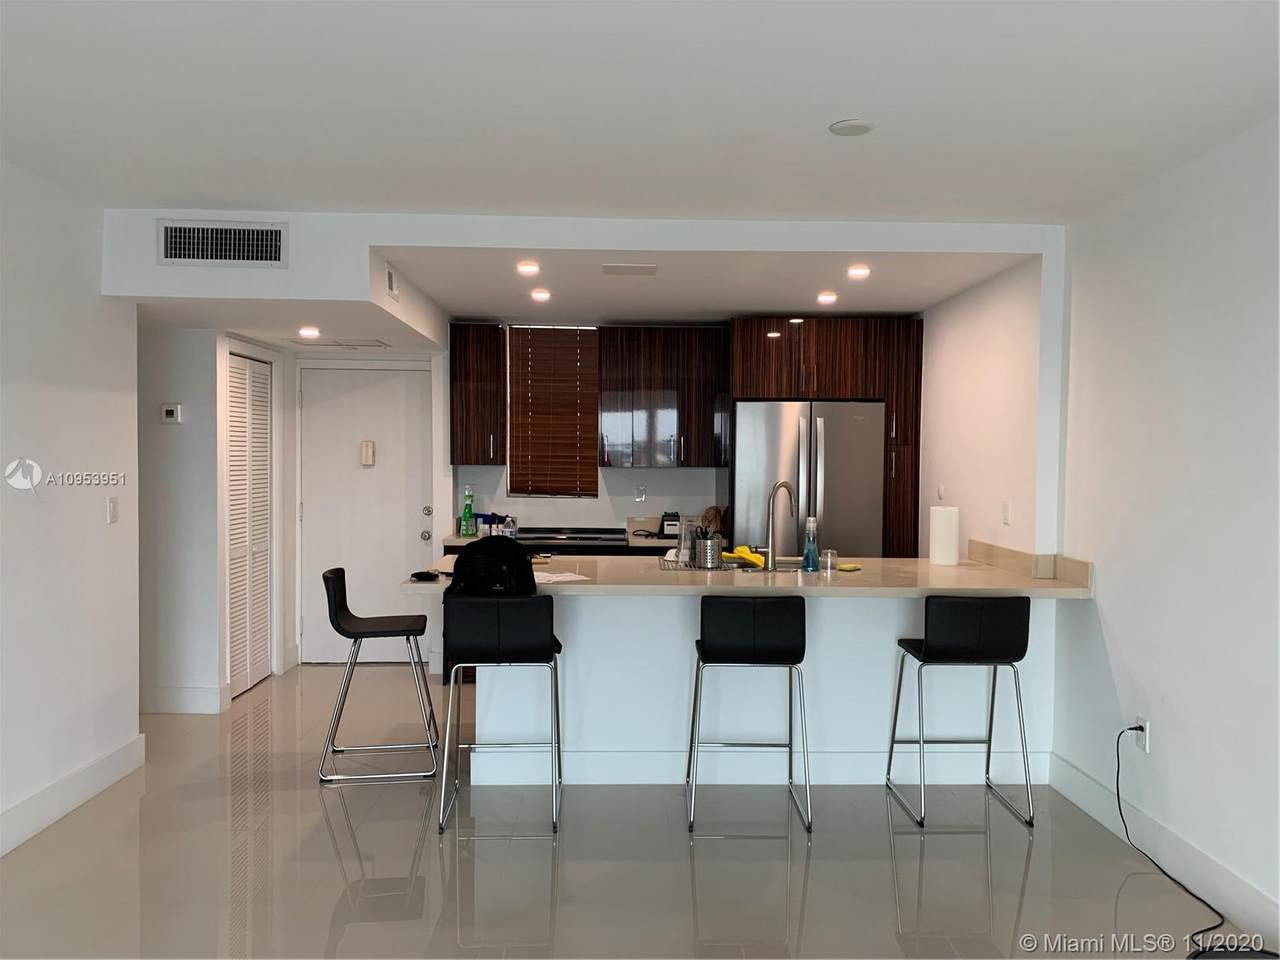 3010 Marcos Dr - Photo 1